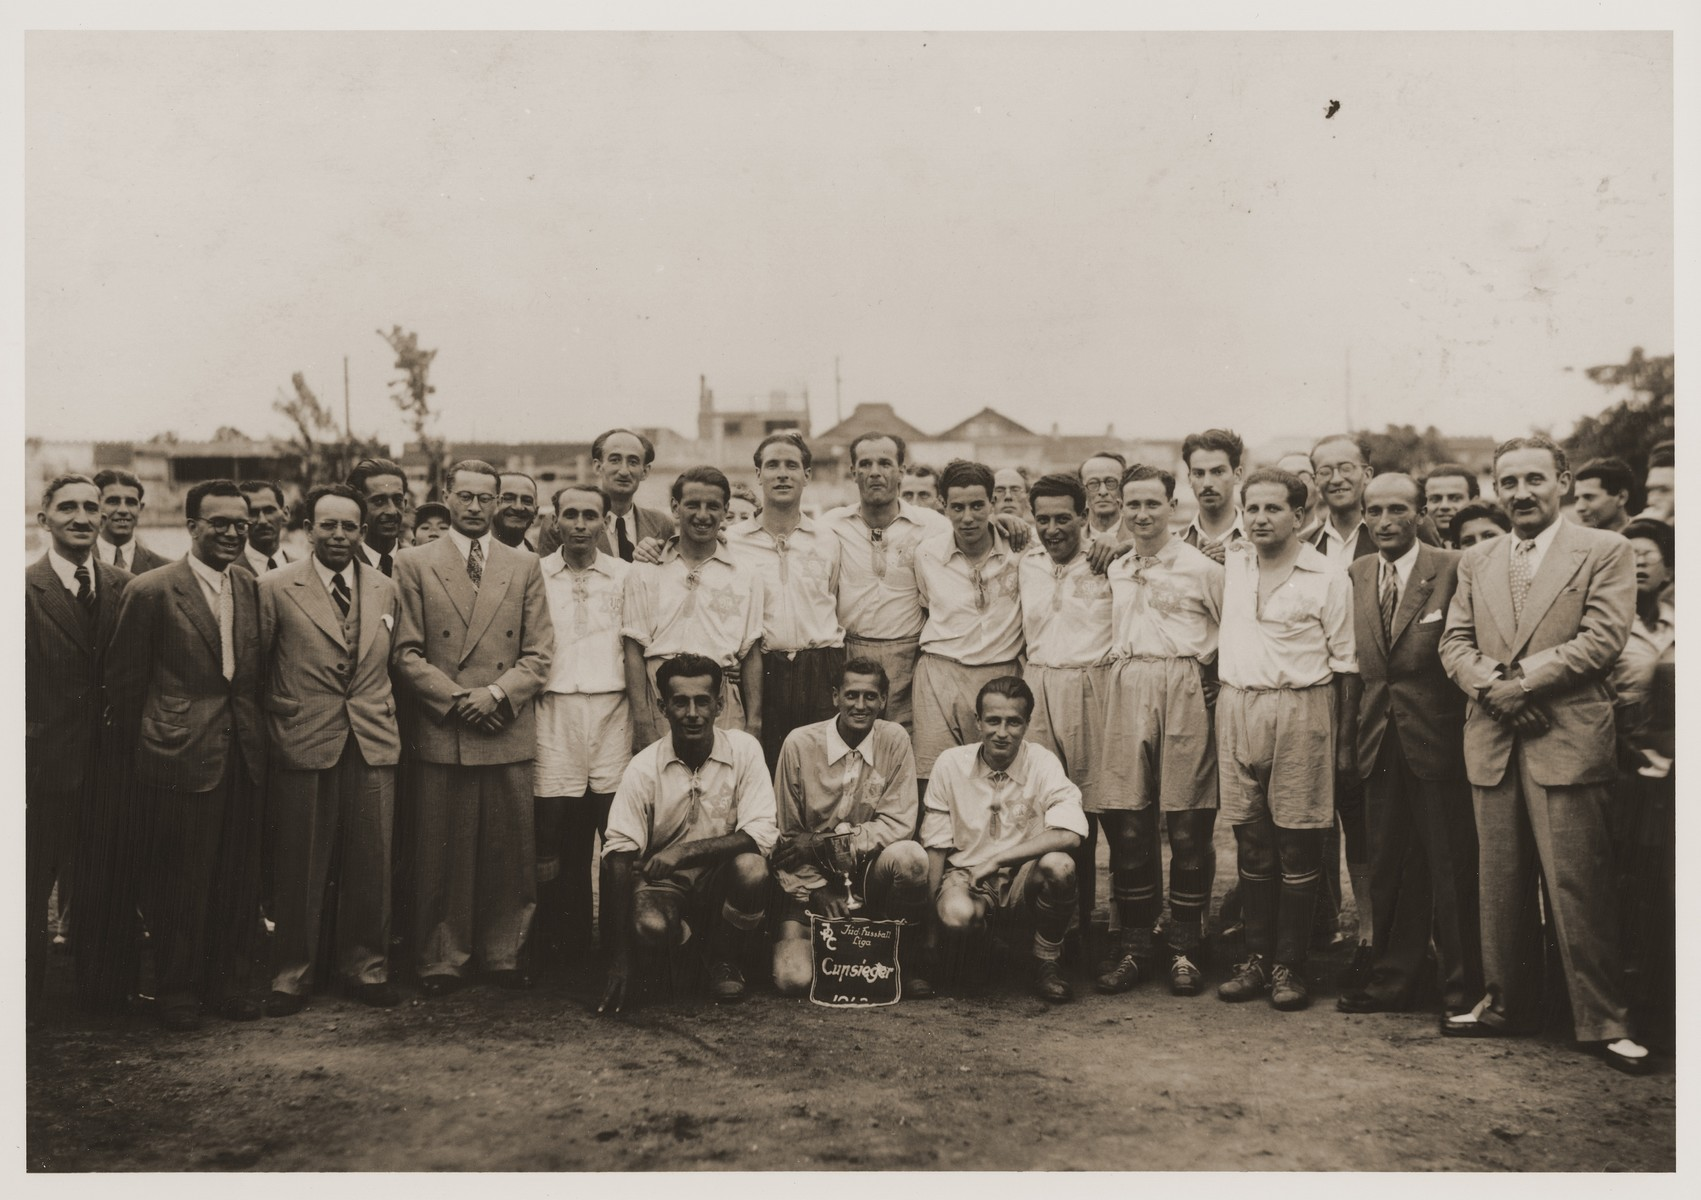 Group portrait of members of the S.J.C soccer team which won the Jewish Refugee Committee of Shanghai championship in 1943.    Eric Goldstaub is kneeling, first on the right.